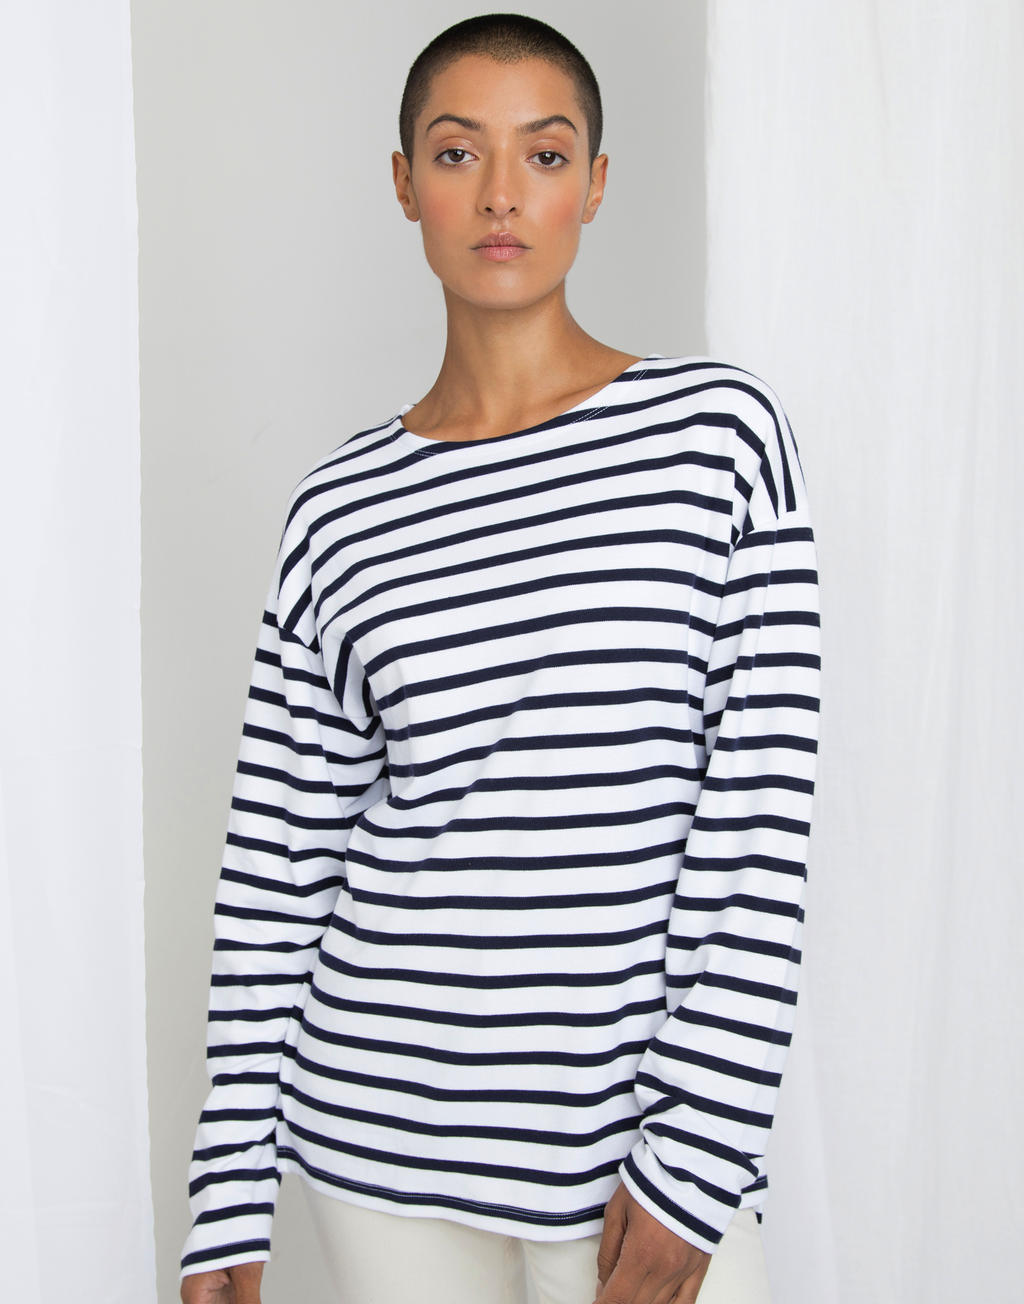 Mantis One Breton Top